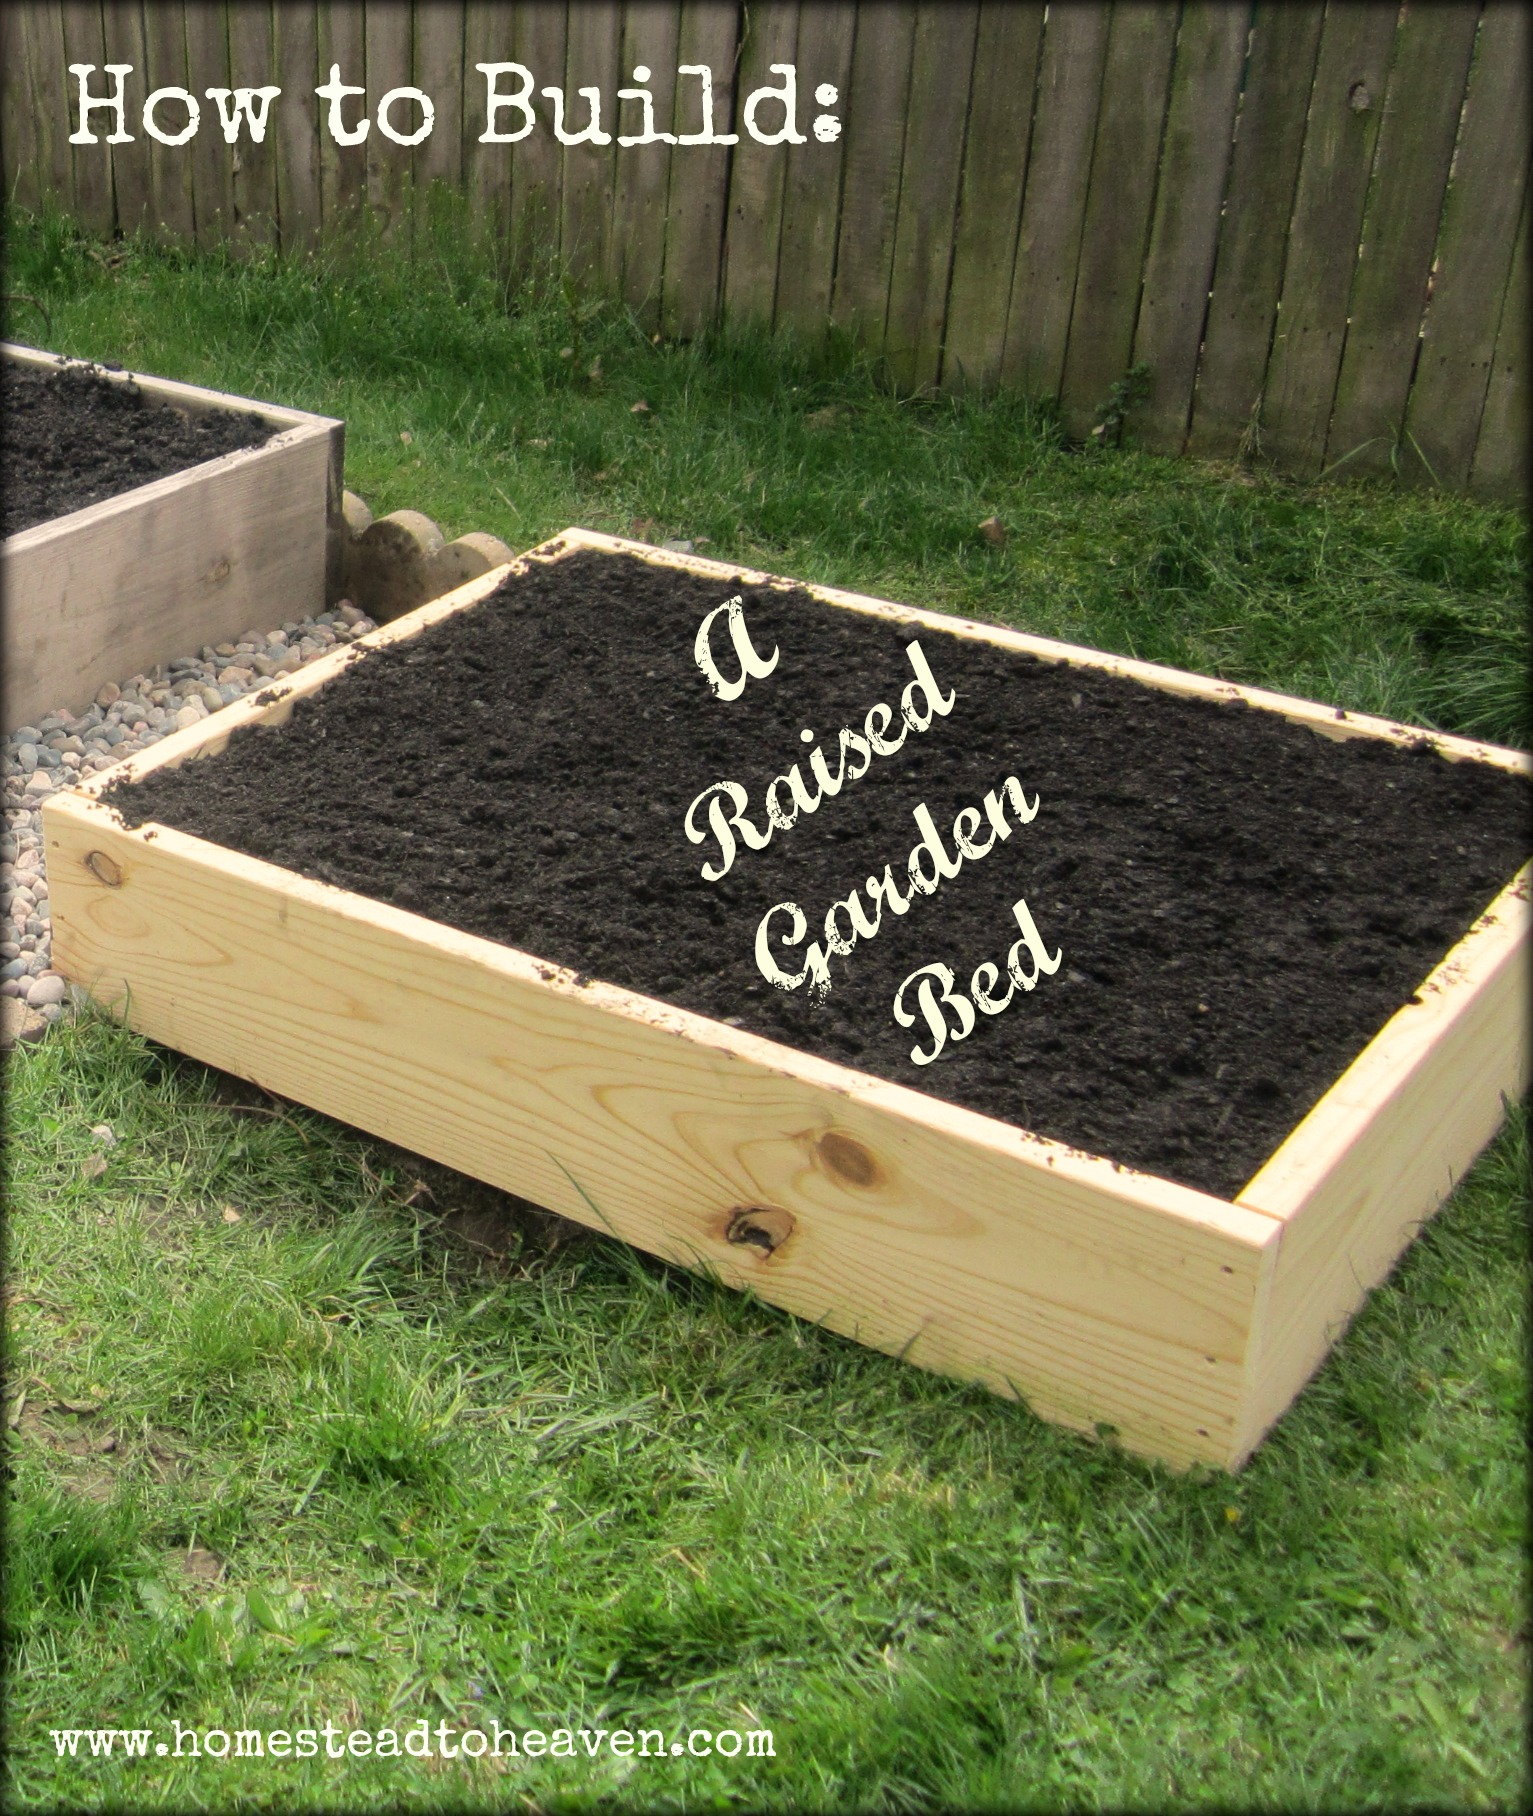 Cheapest way to make raised beds new house designs for Cheapest way to make raised beds